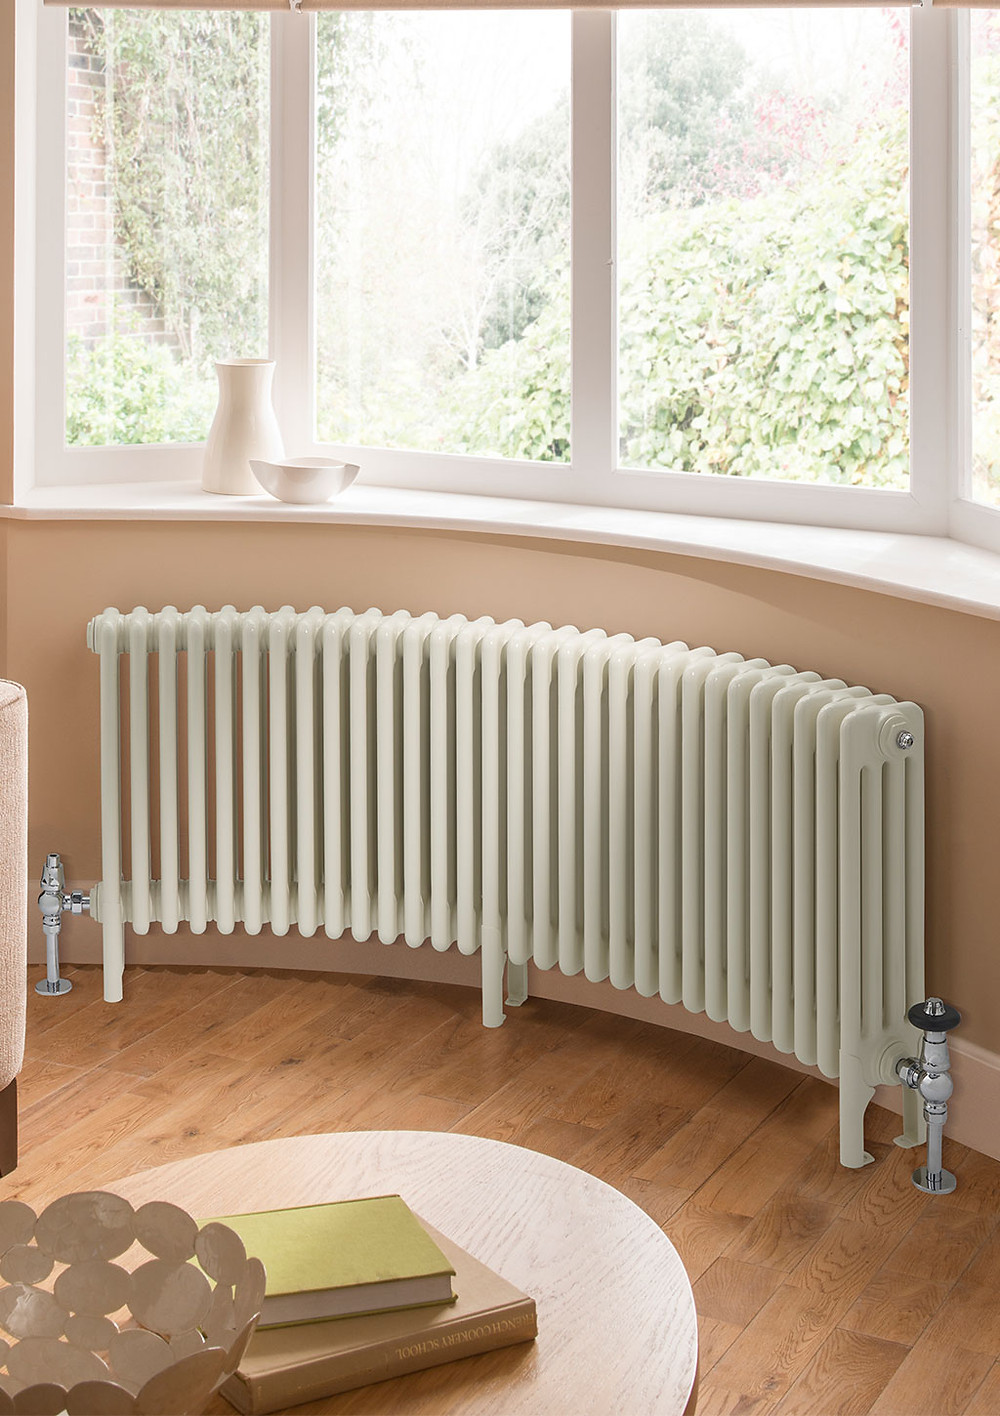 curved radiator under a window